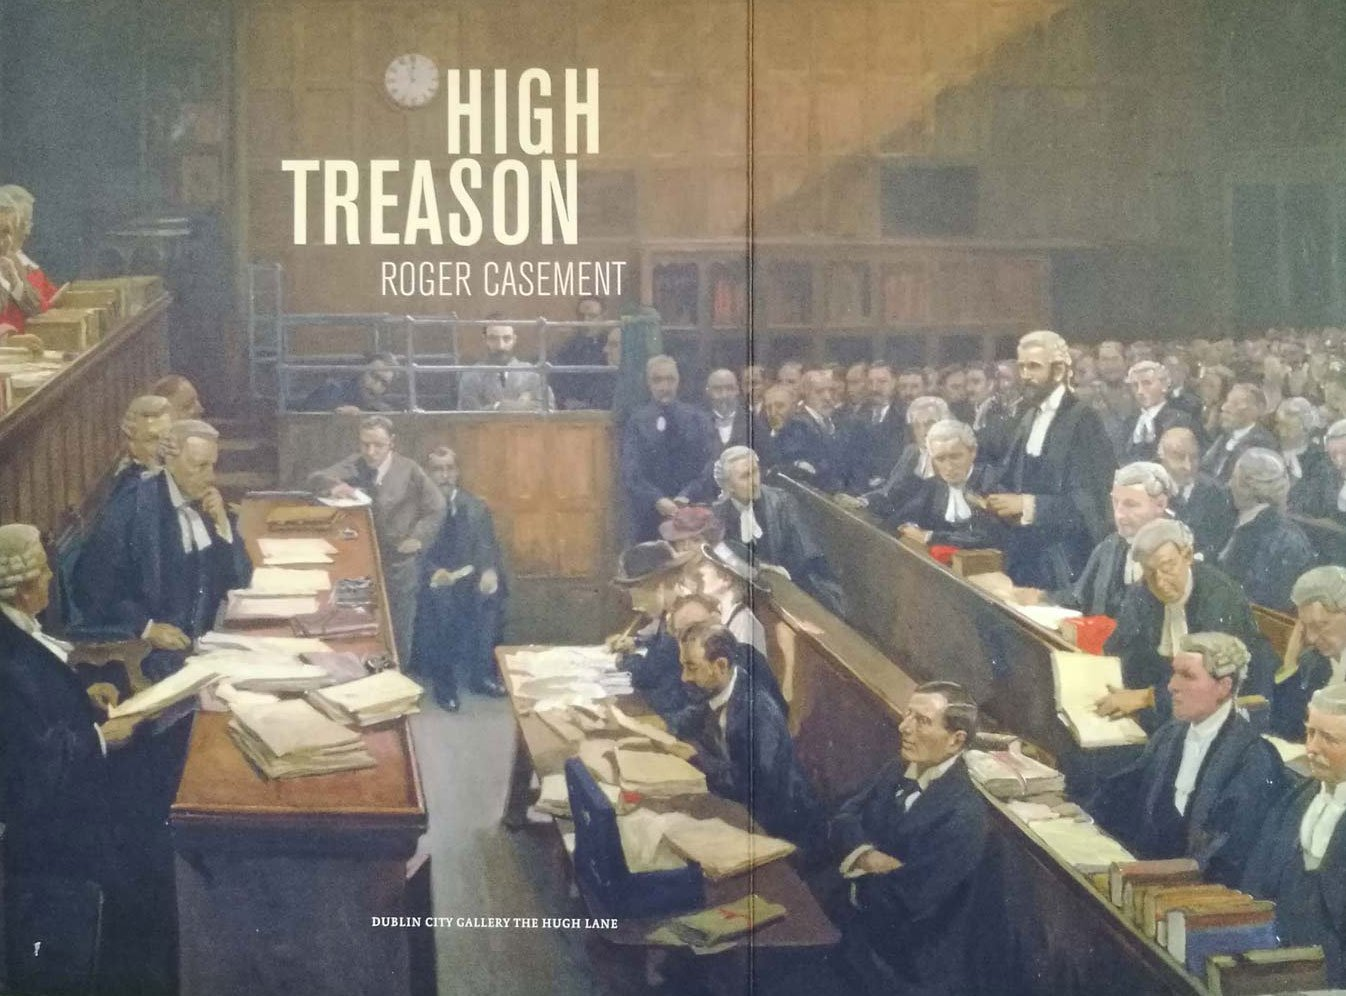 Roger Casement: 'High Treason' & the Politics of Hanging